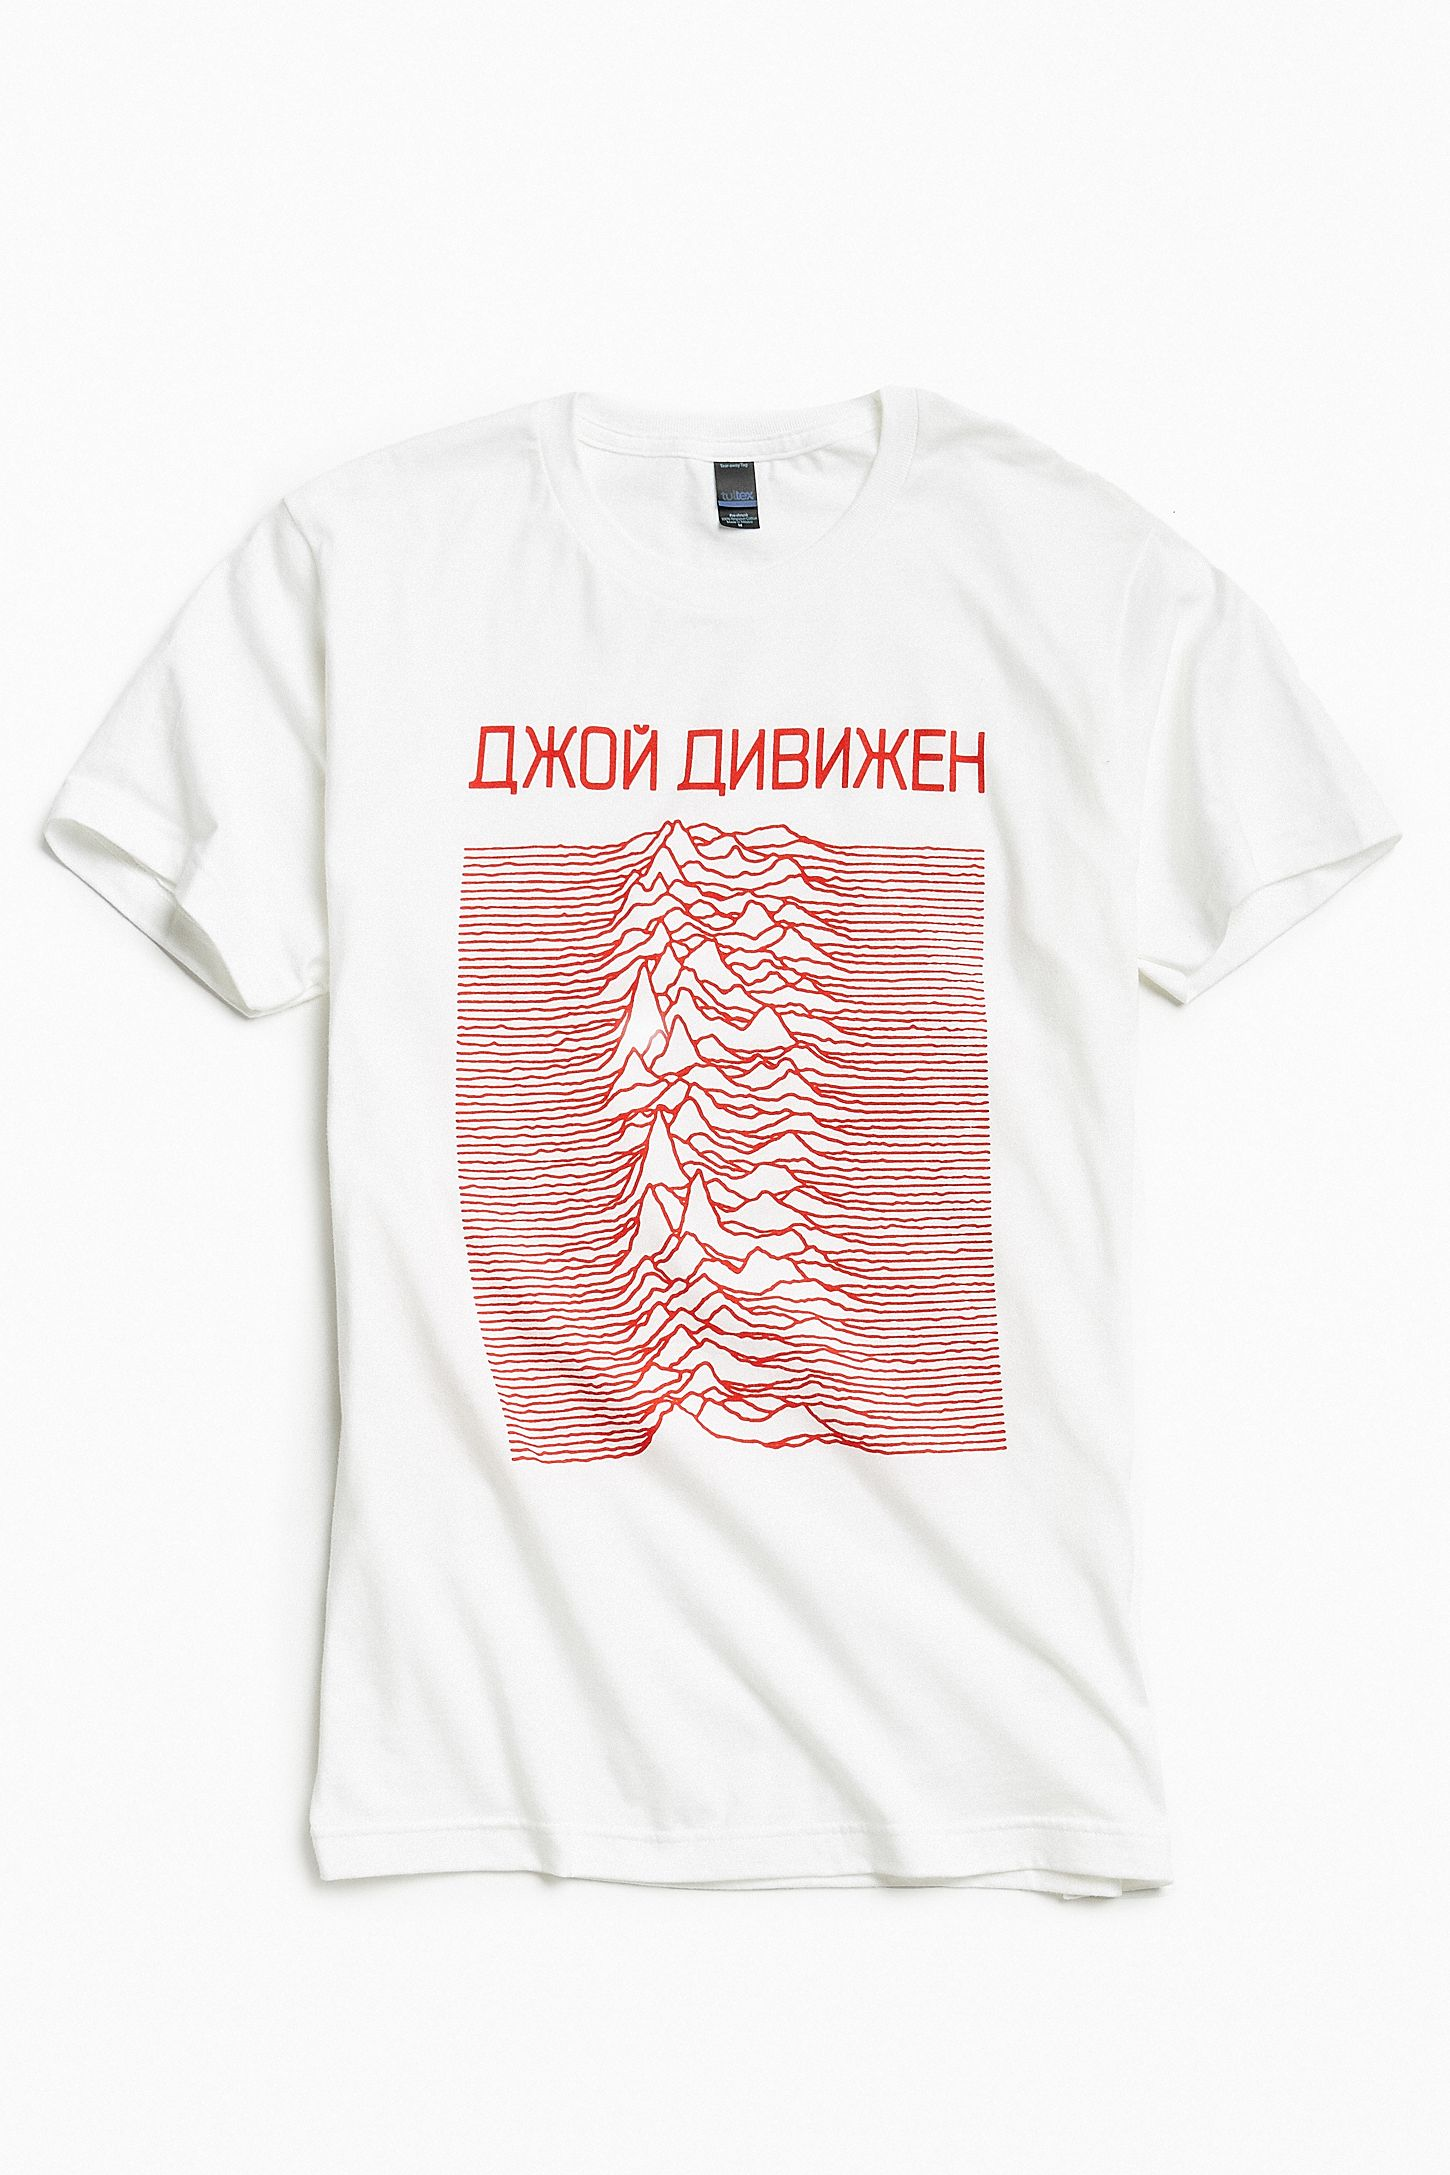 6ef2eb0d3a Joy Division Unknown Pleasures Tee | Urban Outfitters